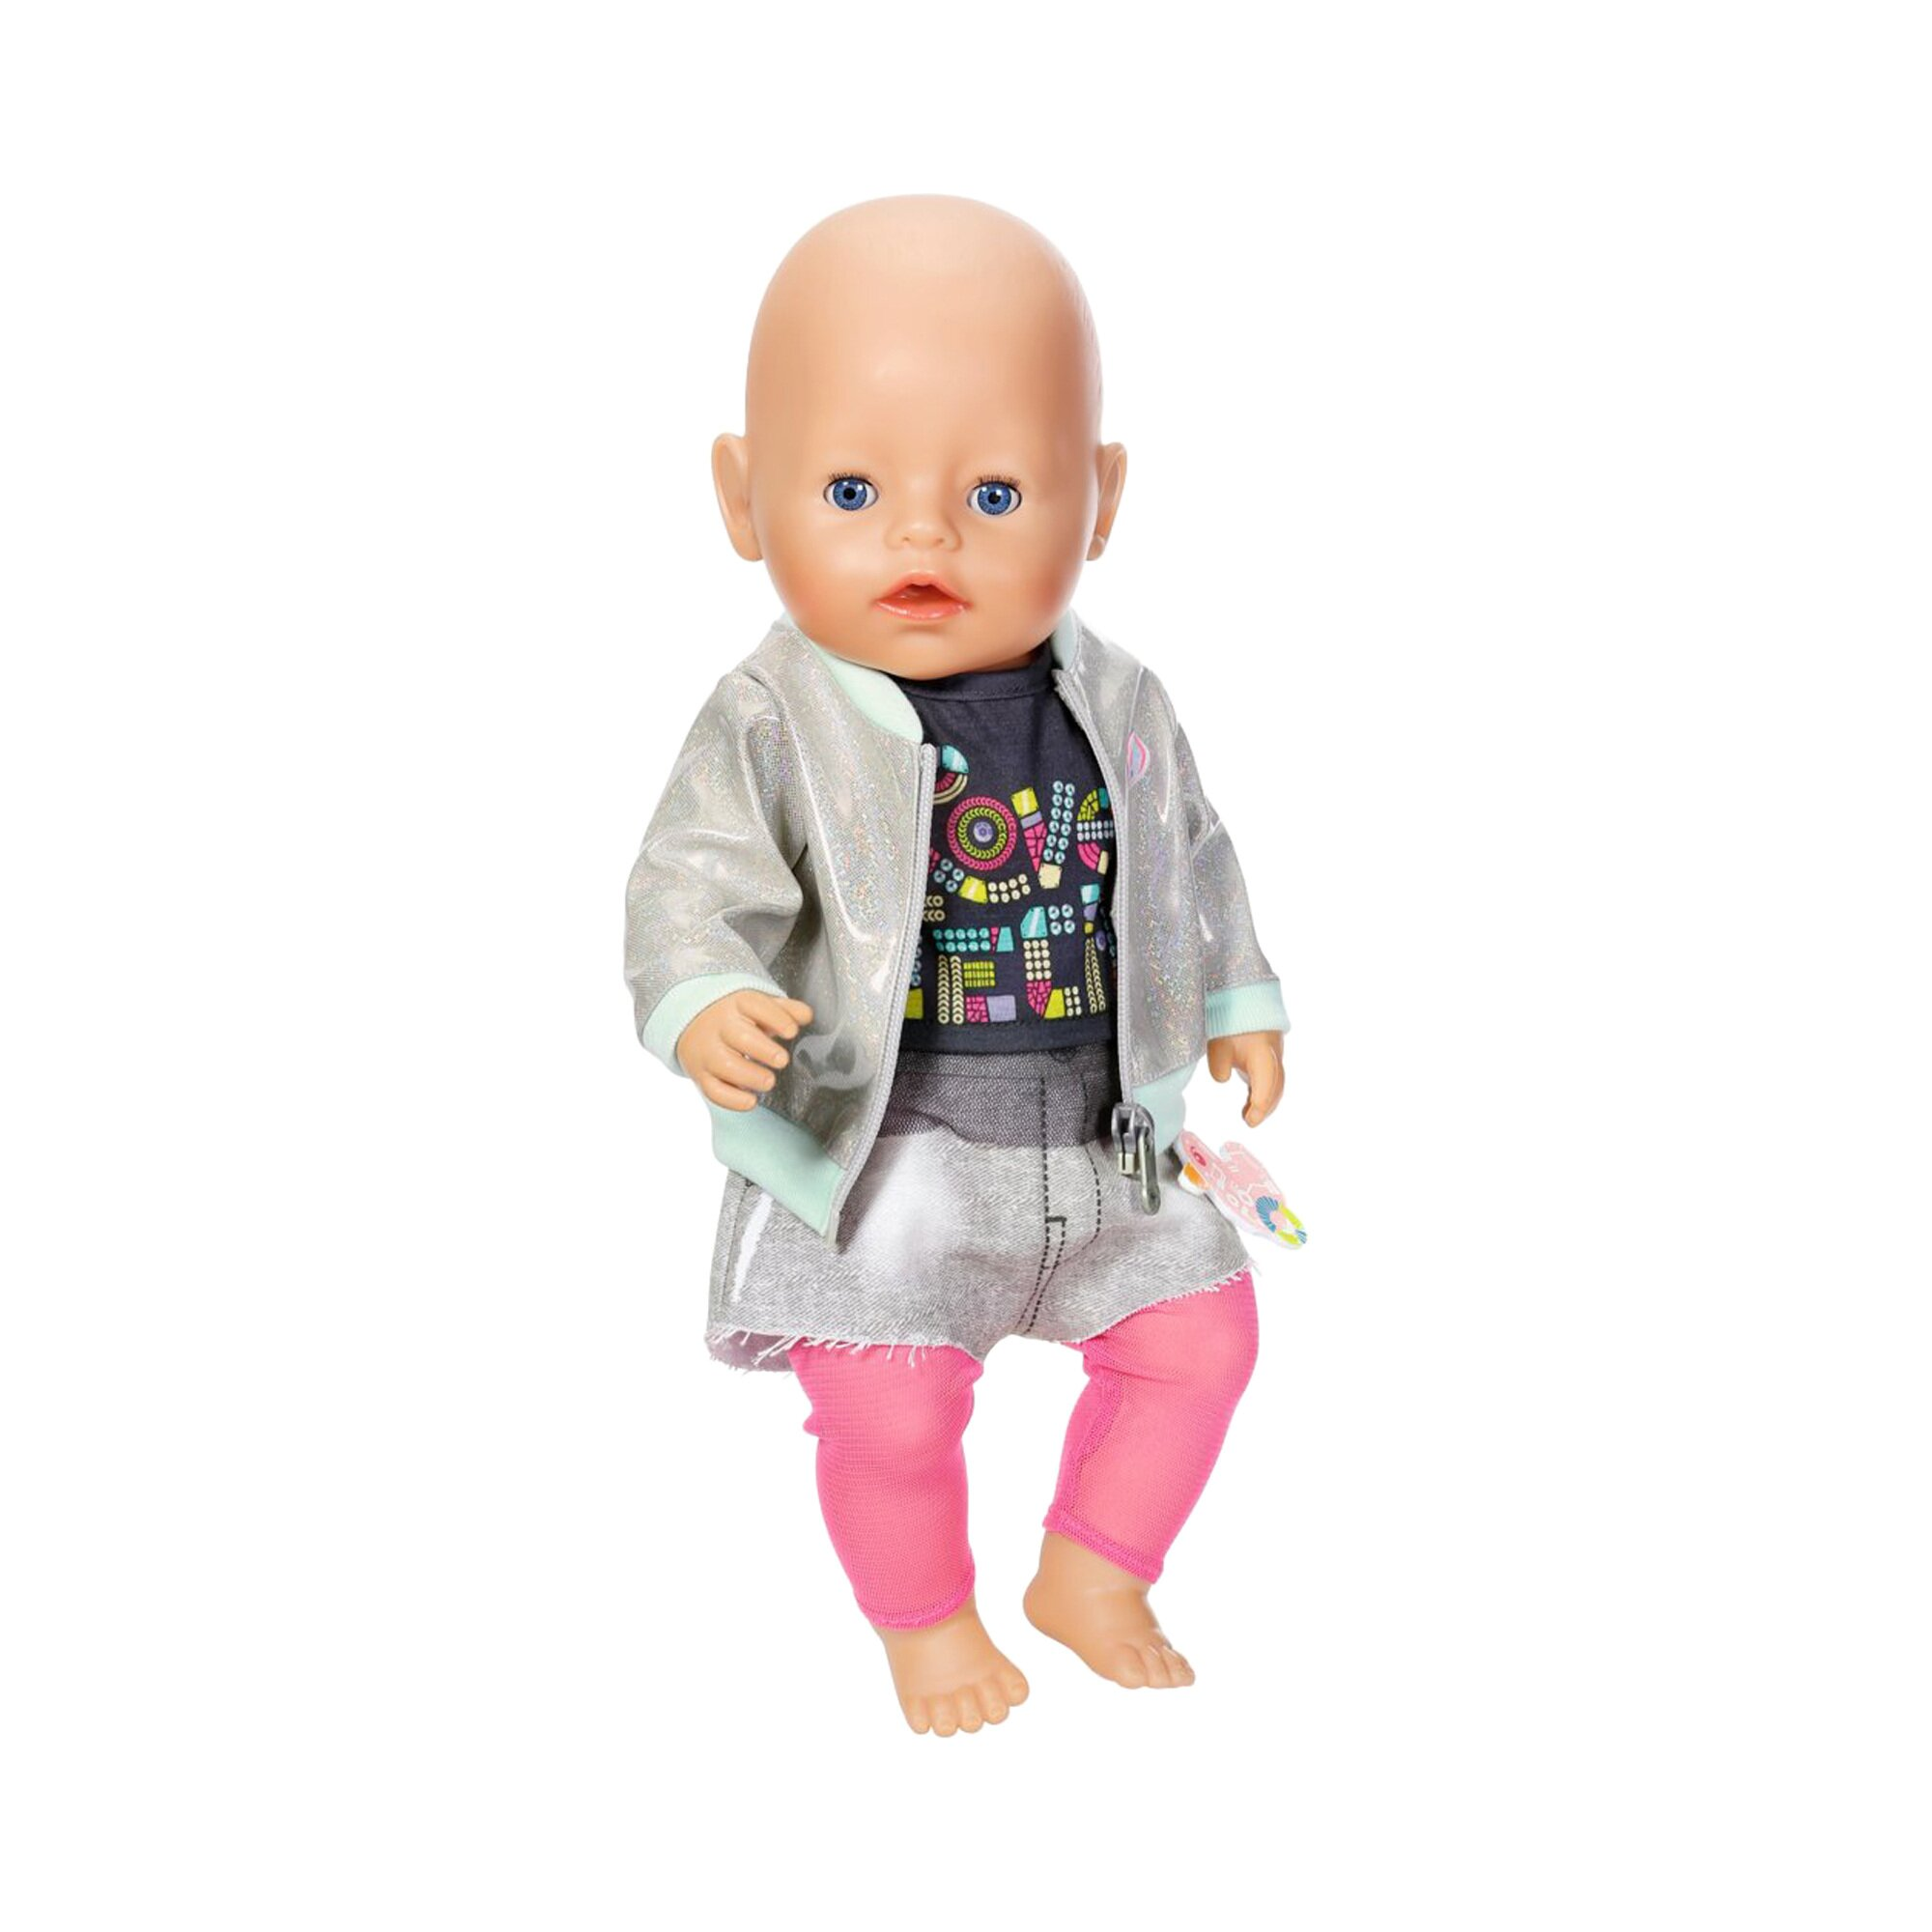 baby-born-baby-born-puppen-outfit-roboter-welt